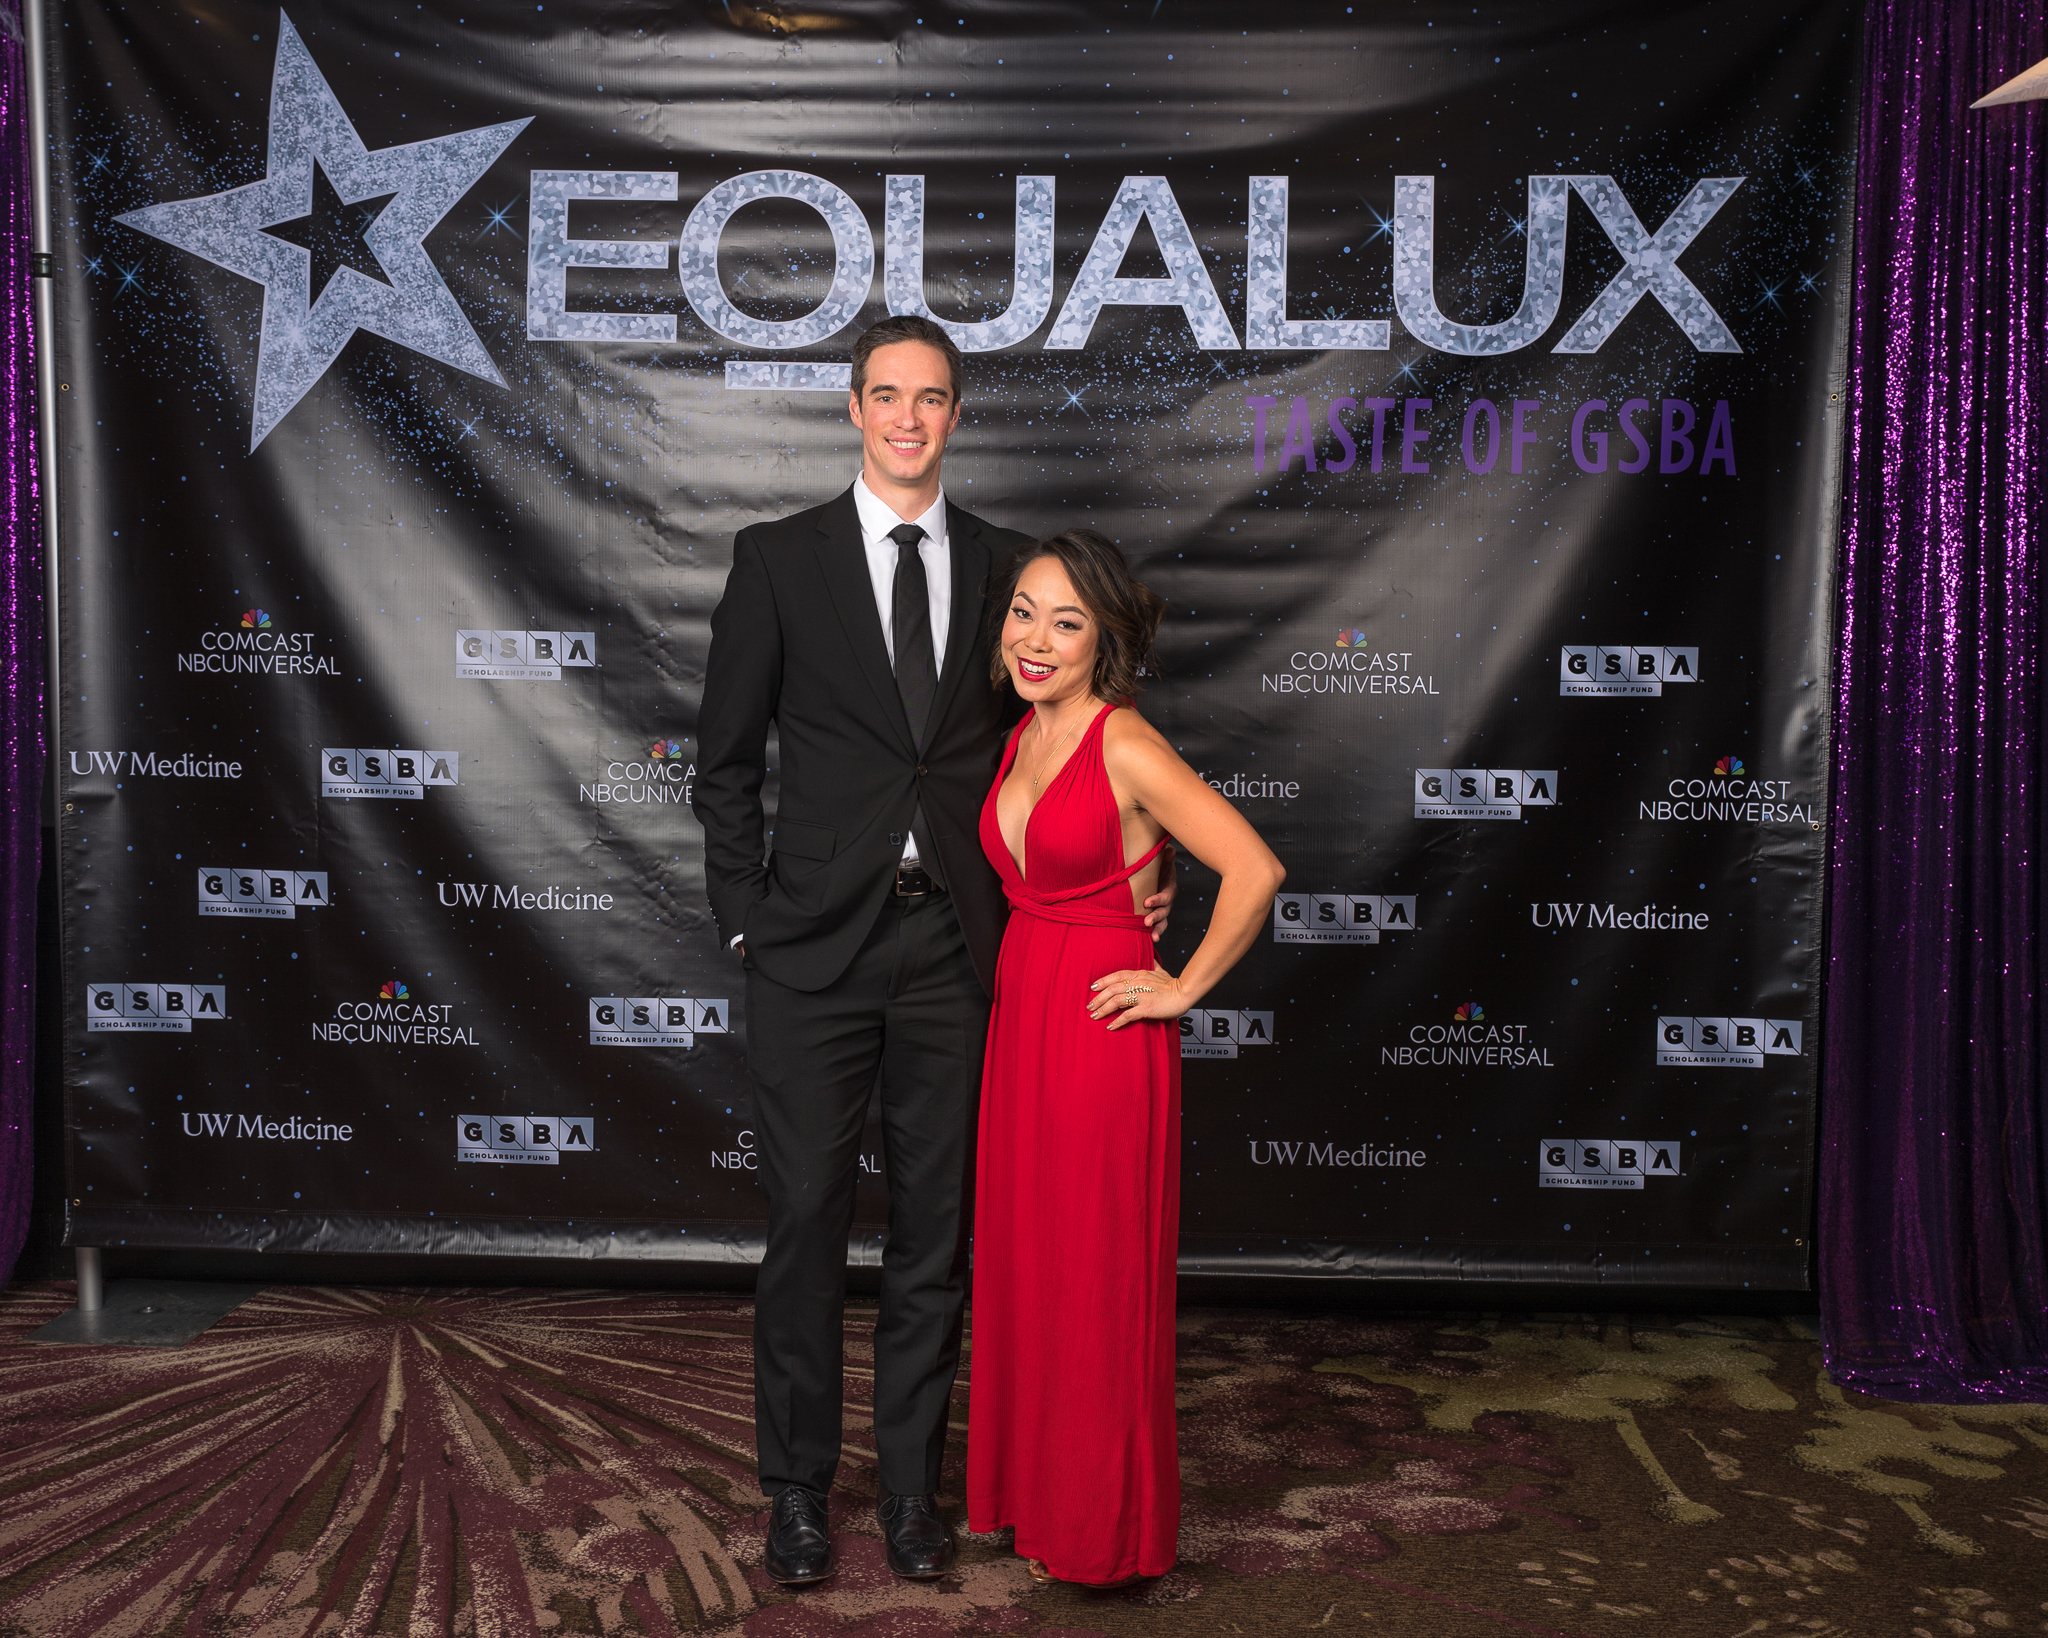 111718_GSBA EQUALUX at The Westin Seattle (Credit- Nate Gowdy)-146.jpg